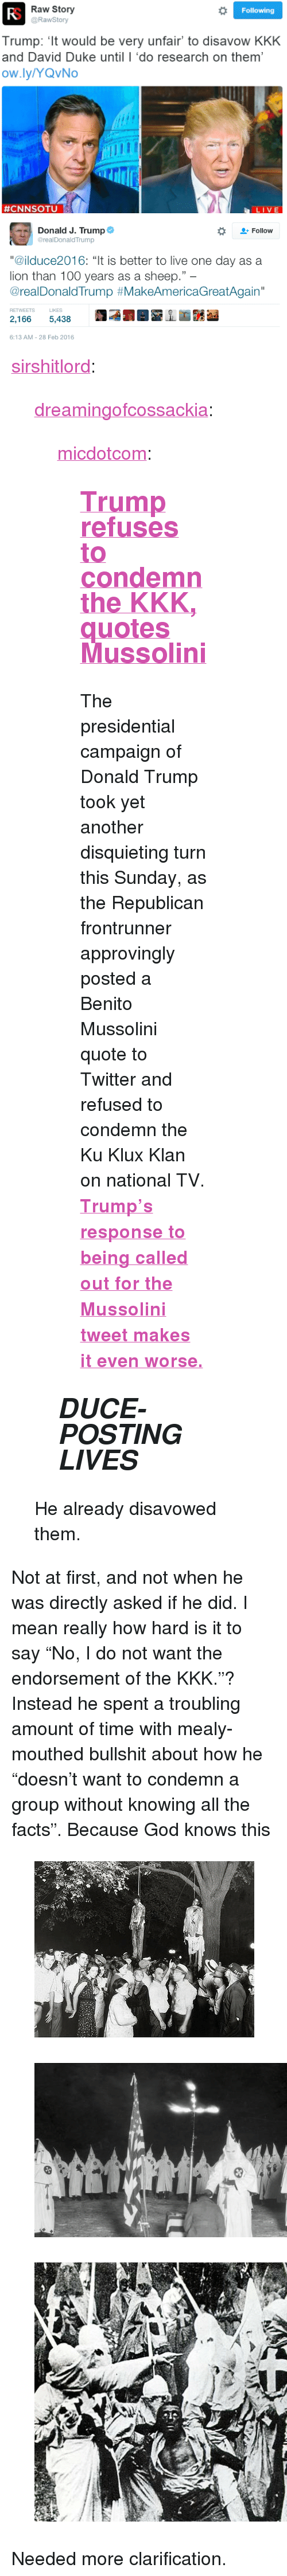 """Anaconda, Donald Trump, and Facts: Raw Story  @RawStory  Following  Trump: 't would be very unfair to disavow KKK  and David Duke until I 'do research on them'  ow.ly/YQvNo  #CNNSOTU  LIVE   Donald J. Trump  2- Follow  @realDonaldTrump  """"@ilduce2016: """"It is better to live one day as a  lion than 100 years as a sheep.""""  @realDonaldTrump #MakeAmericaGreatAgain""""  RETWEETS LIKES  2,1665,438  6:13 AM-28 Feb 2016 <p><a class=""""tumblr_blog"""" href=""""http://sirshitlord.tumblr.com/post/140160662031"""">sirshitlord</a>:</p> <blockquote> <p><a class=""""tumblr_blog"""" href=""""http://dreamingofcossackia.tumblr.com/post/140159100619"""">dreamingofcossackia</a>:</p> <blockquote> <p><a class=""""tumblr_blog"""" href=""""http://micdotcom.tumblr.com/post/140156220061"""">micdotcom</a>:</p> <blockquote> <h2><b><a href=""""http://mic.com/articles/136447/donald-trump-approvingly-retweets-mussolini-quote-refuses-to-condemn-kkk?utm_source=policymicTBLR&utm_medium=main&utm_campaign=social"""">Trump refuses to condemn the KKK, quotes Mussolini</a></b></h2> <p>The presidential campaign of Donald Trump took yet another disquieting turn this Sunday, as the Republican frontrunner approvingly posted a Benito Mussolini quote to Twitter and refused to condemn the Ku Klux Klan on national TV. <b><a href=""""http://mic.com/articles/136447/donald-trump-approvingly-retweets-mussolini-quote-refuses-to-condemn-kkk?utm_source=policymicTBLR&utm_medium=main&utm_campaign=social"""">Trump's response to being called out for the Mussolini tweet makes it even worse.</a></b></p> </blockquote> <h2><b><i>DUCE-POSTING LIVES</i></b></h2> </blockquote> <p>He already disavowed them.</p> </blockquote>  <p>  Not at first, and not when he was directly asked if he did. I mean really how hard is it to say """"No, I do not want the endorsement of the KKK.""""? Instead he spent a troubling amount of time with mealy-mouthed bullshit about how he """"doesn't want to condemn a group without knowing all the facts"""". Because God knows this  <br/></p><figure class=""""tmblr-full"""" da"""